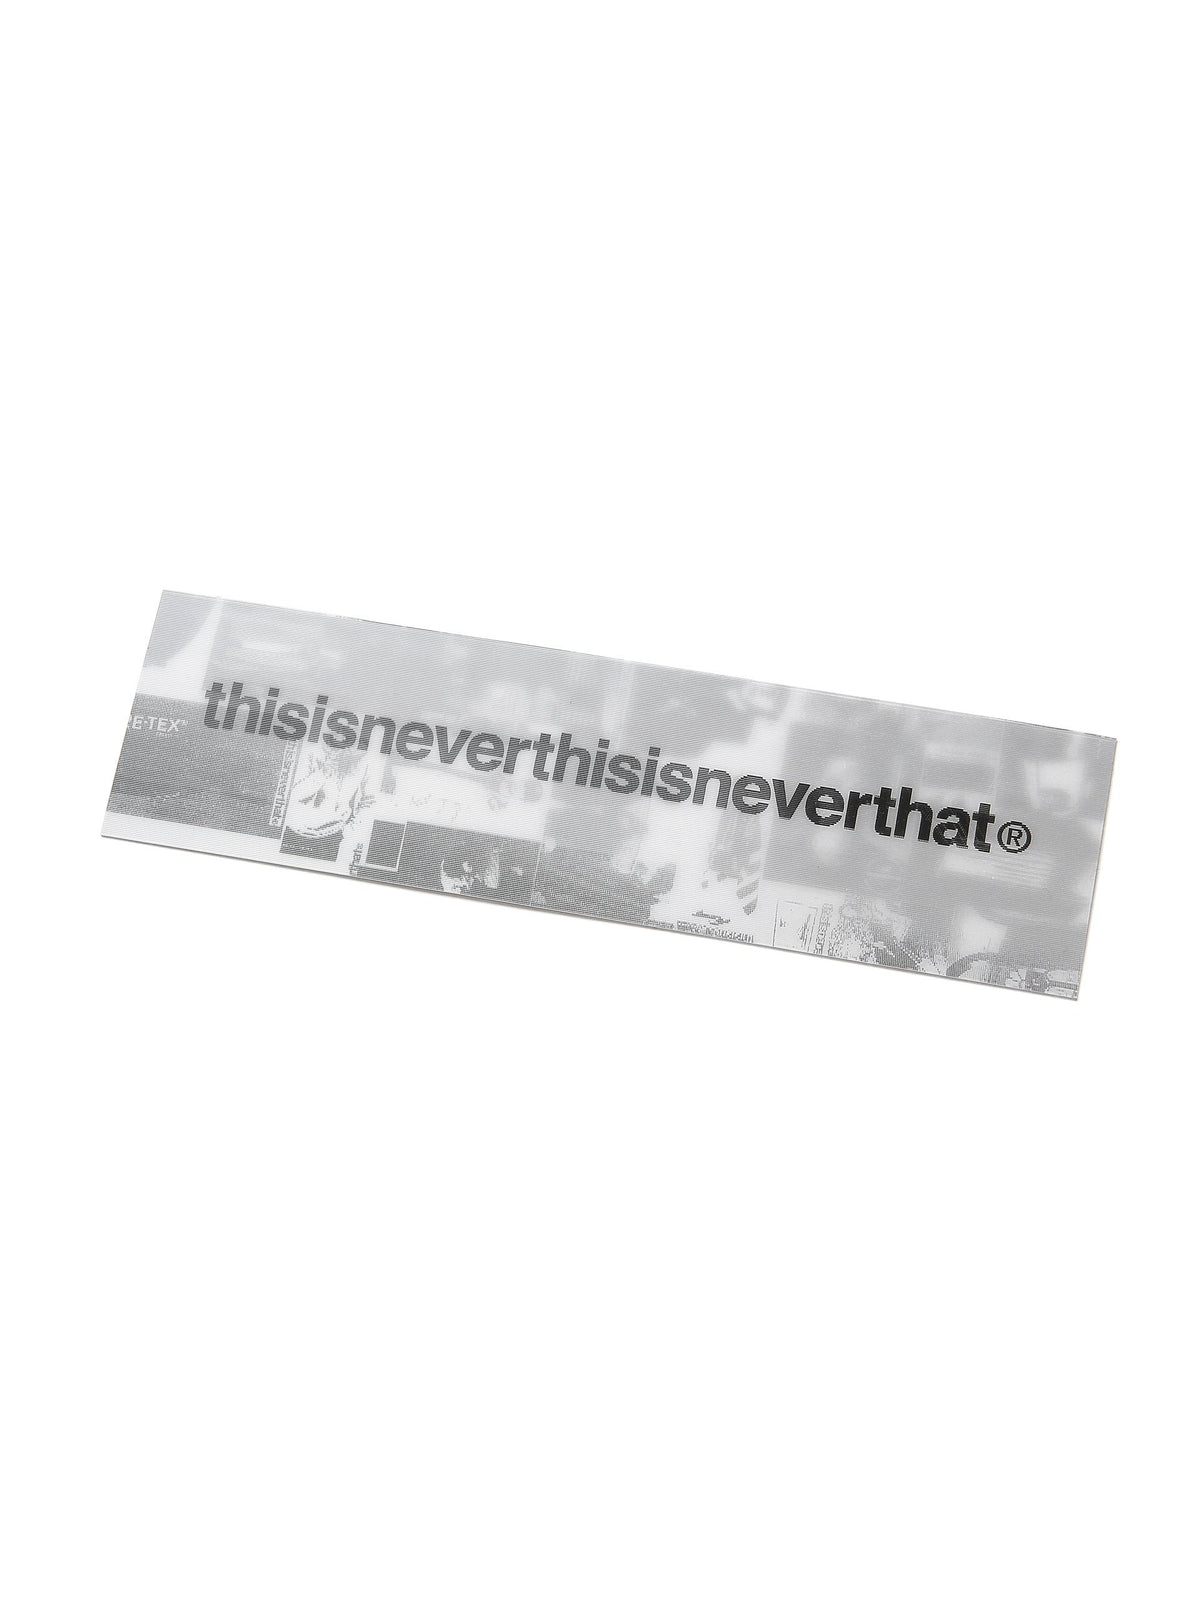 thisisneverthat® Archives: 2010-2020 - thisisneverthat